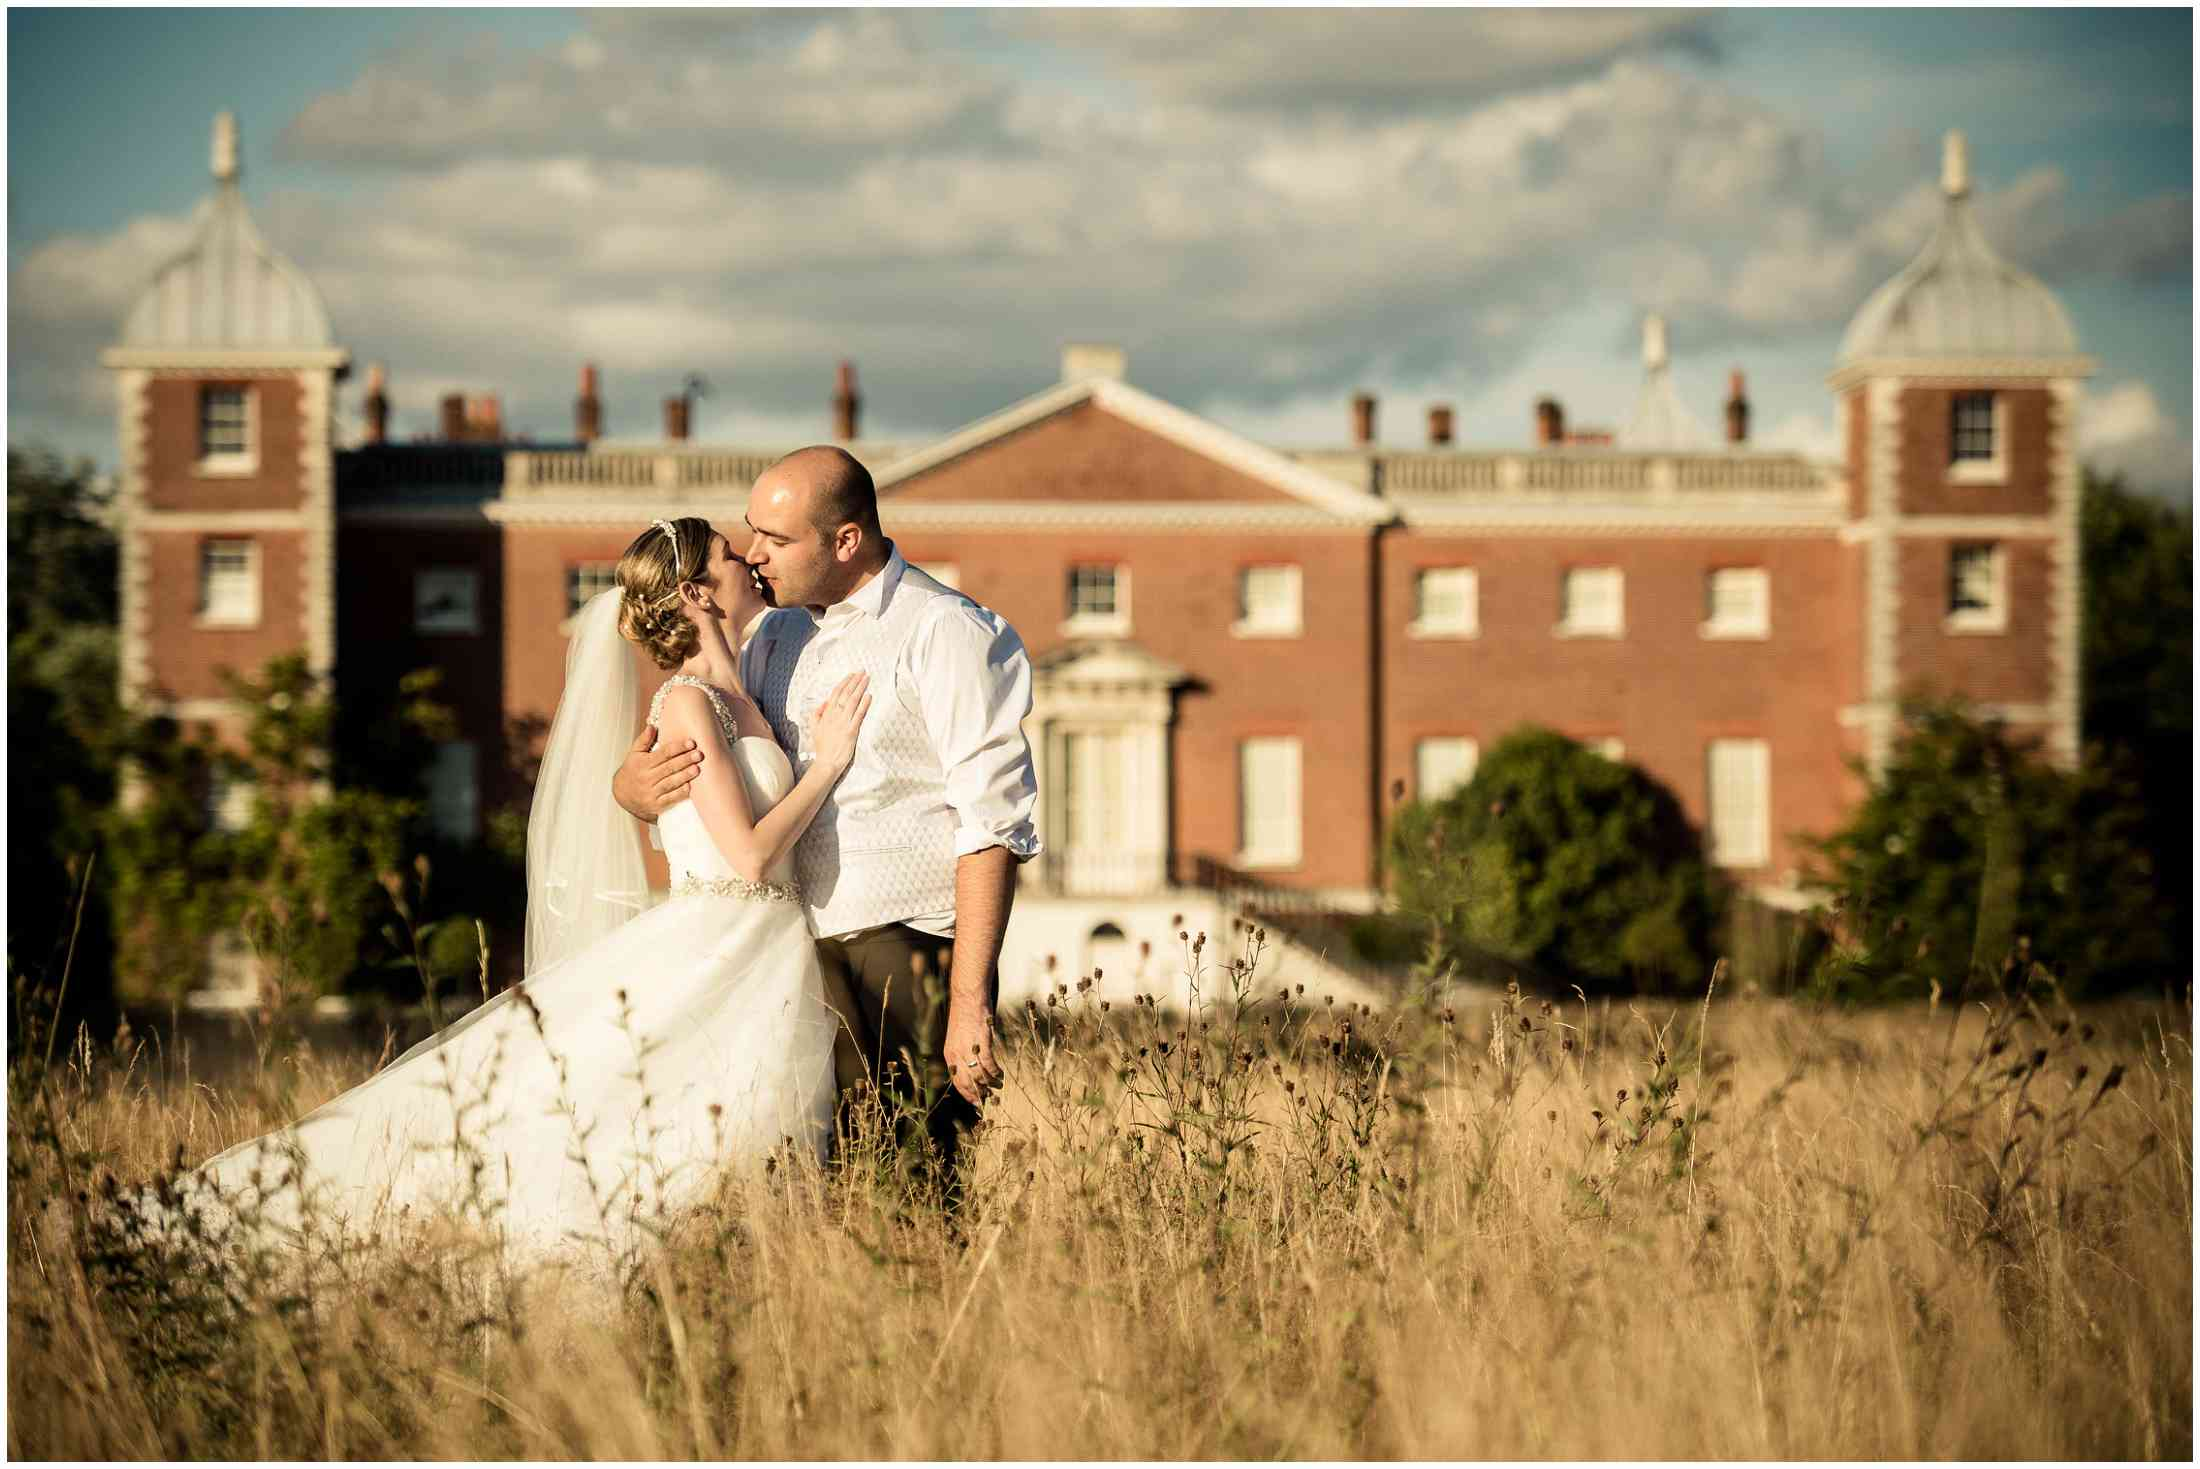 Osterley Park Wedding Photography - Hayley and Elliot